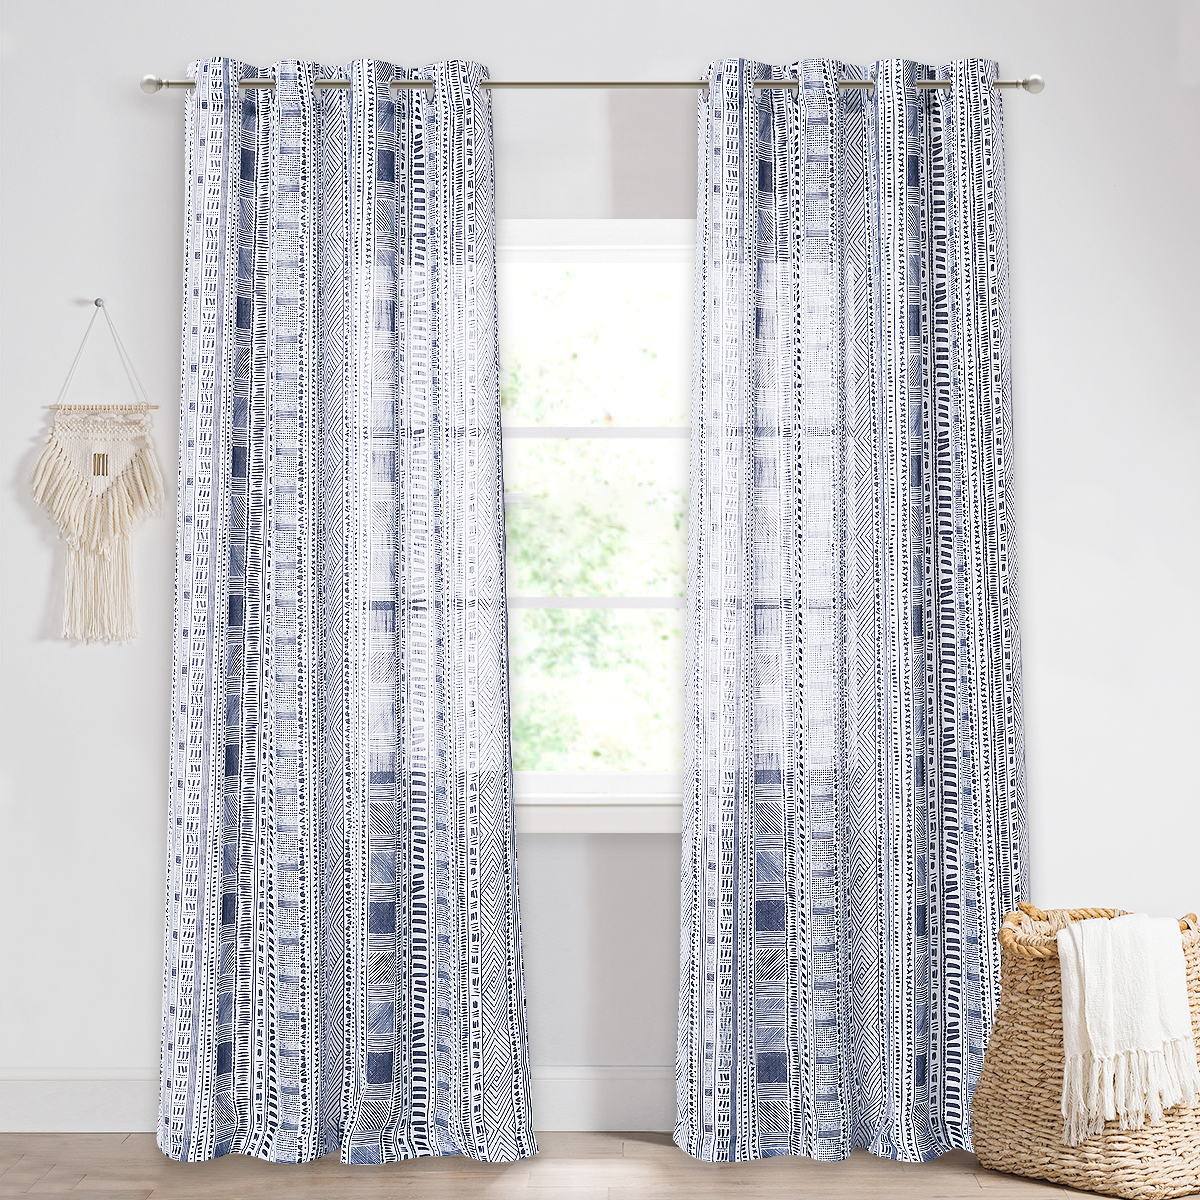 Bohemia Linen Textured Sheer Curtain,Sold as 1 Panel